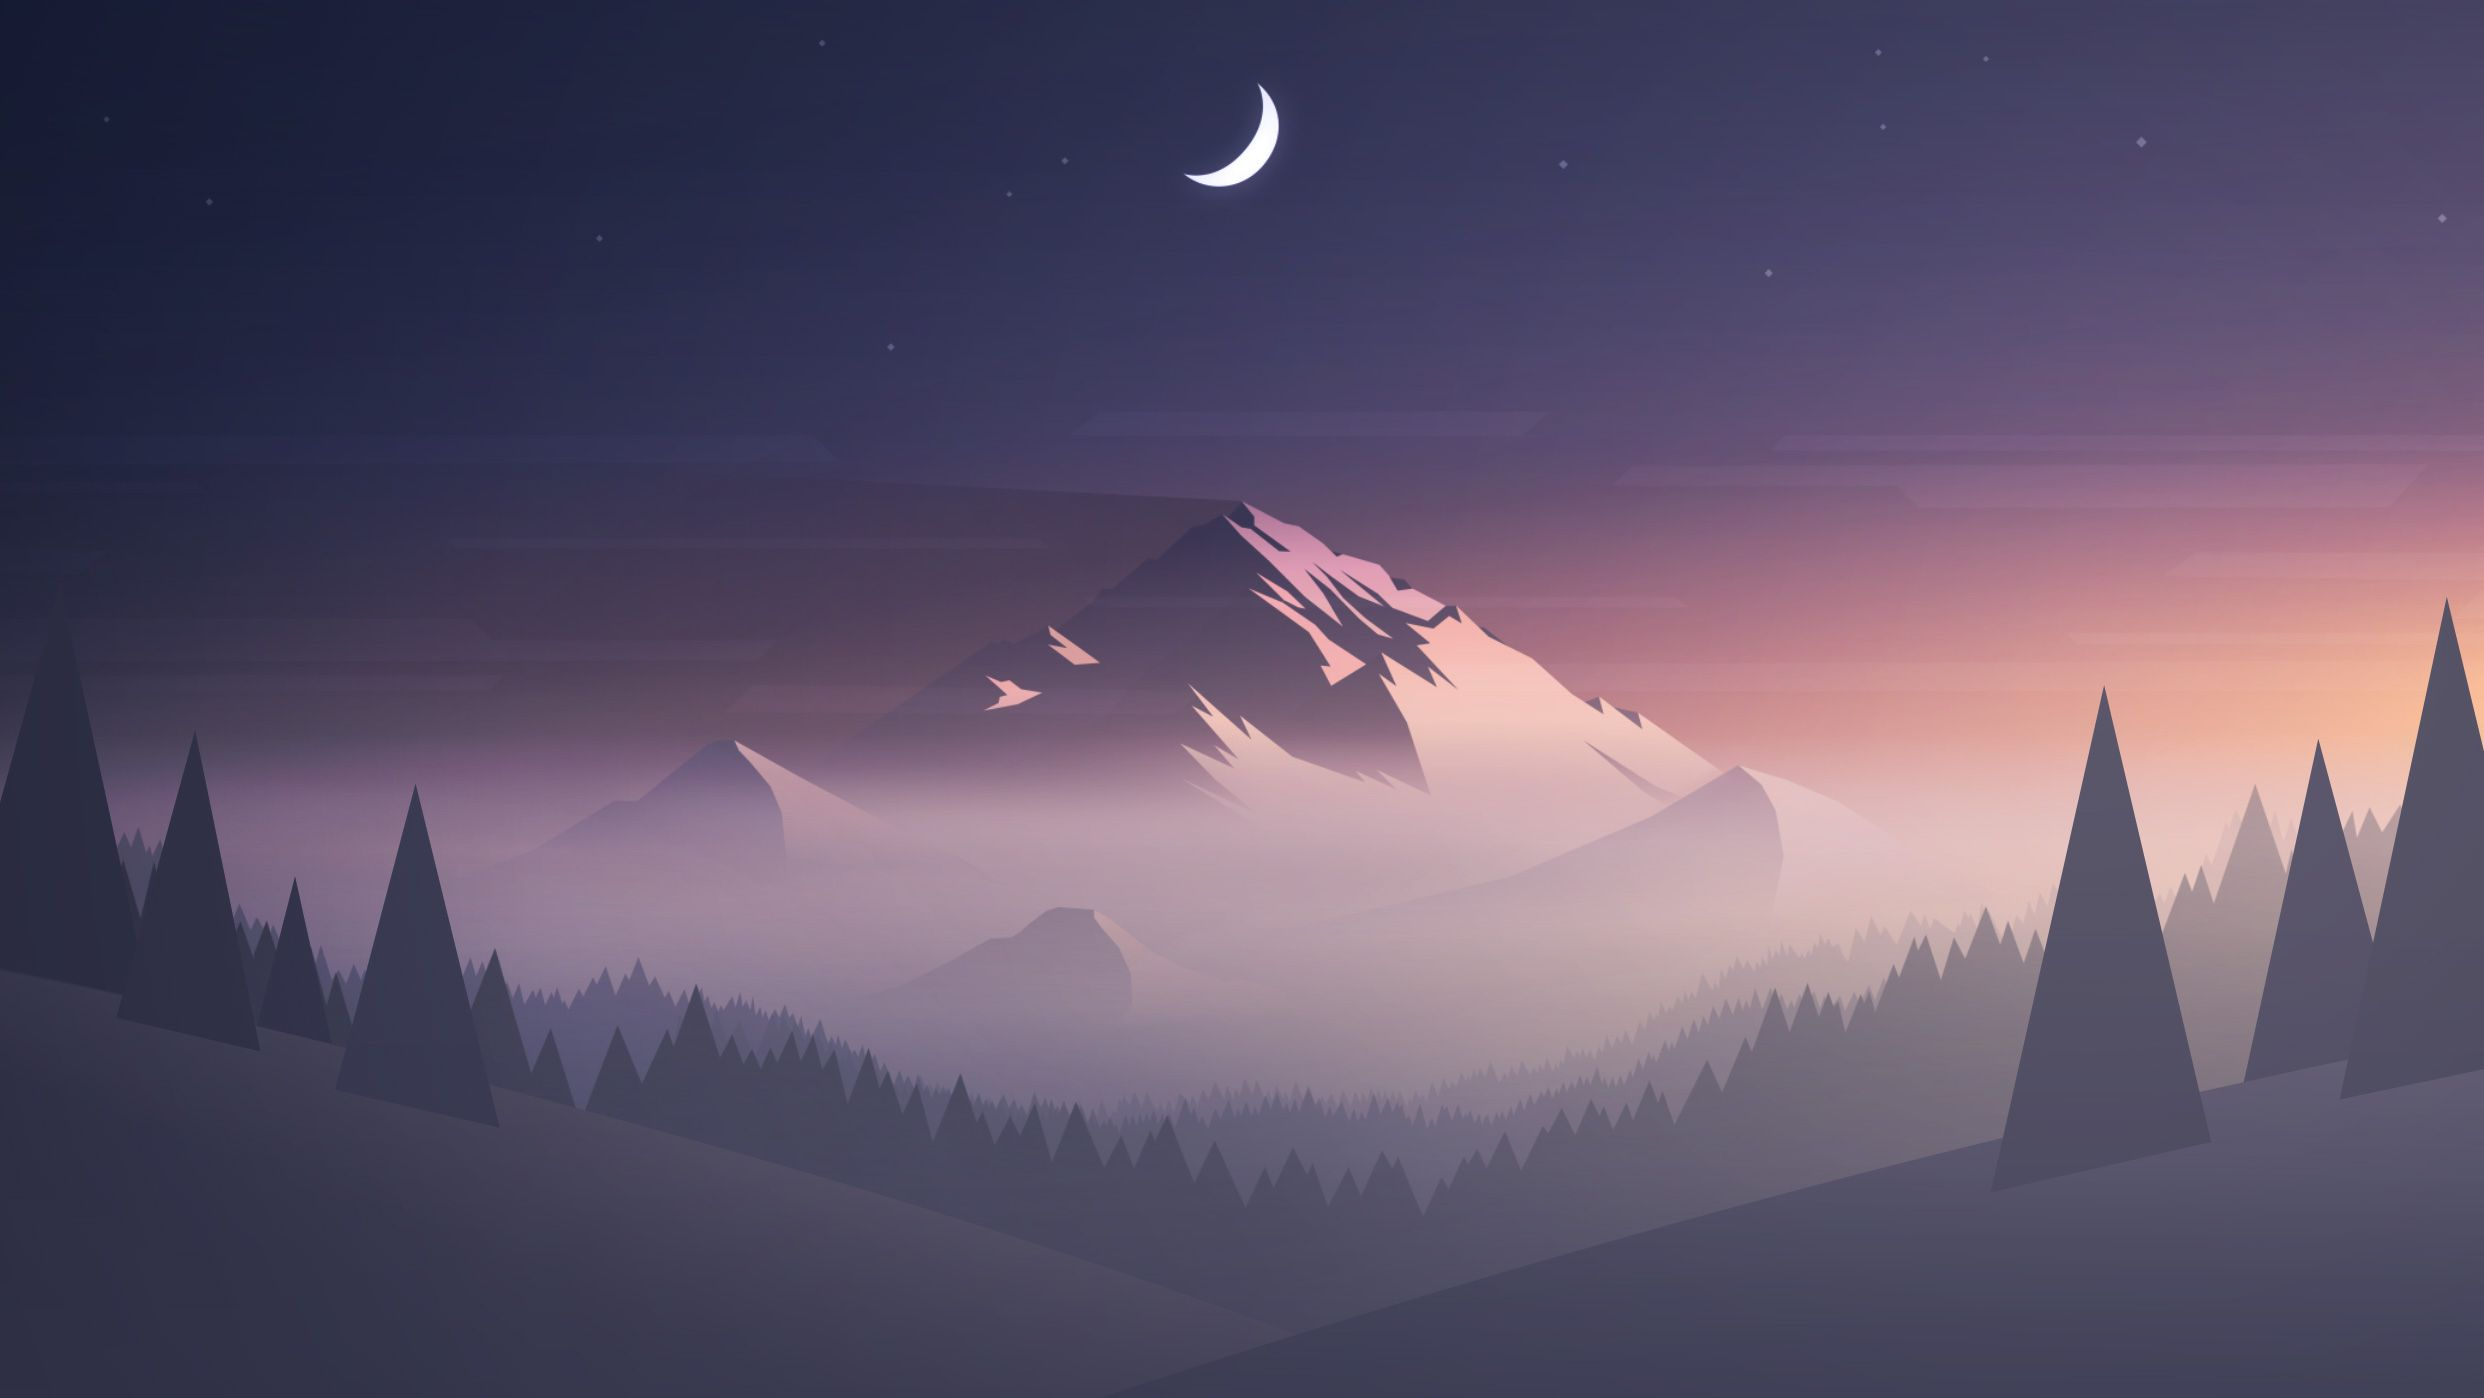 Minimalist Wallpaper 1920x1080 Posted By Michelle Thompson